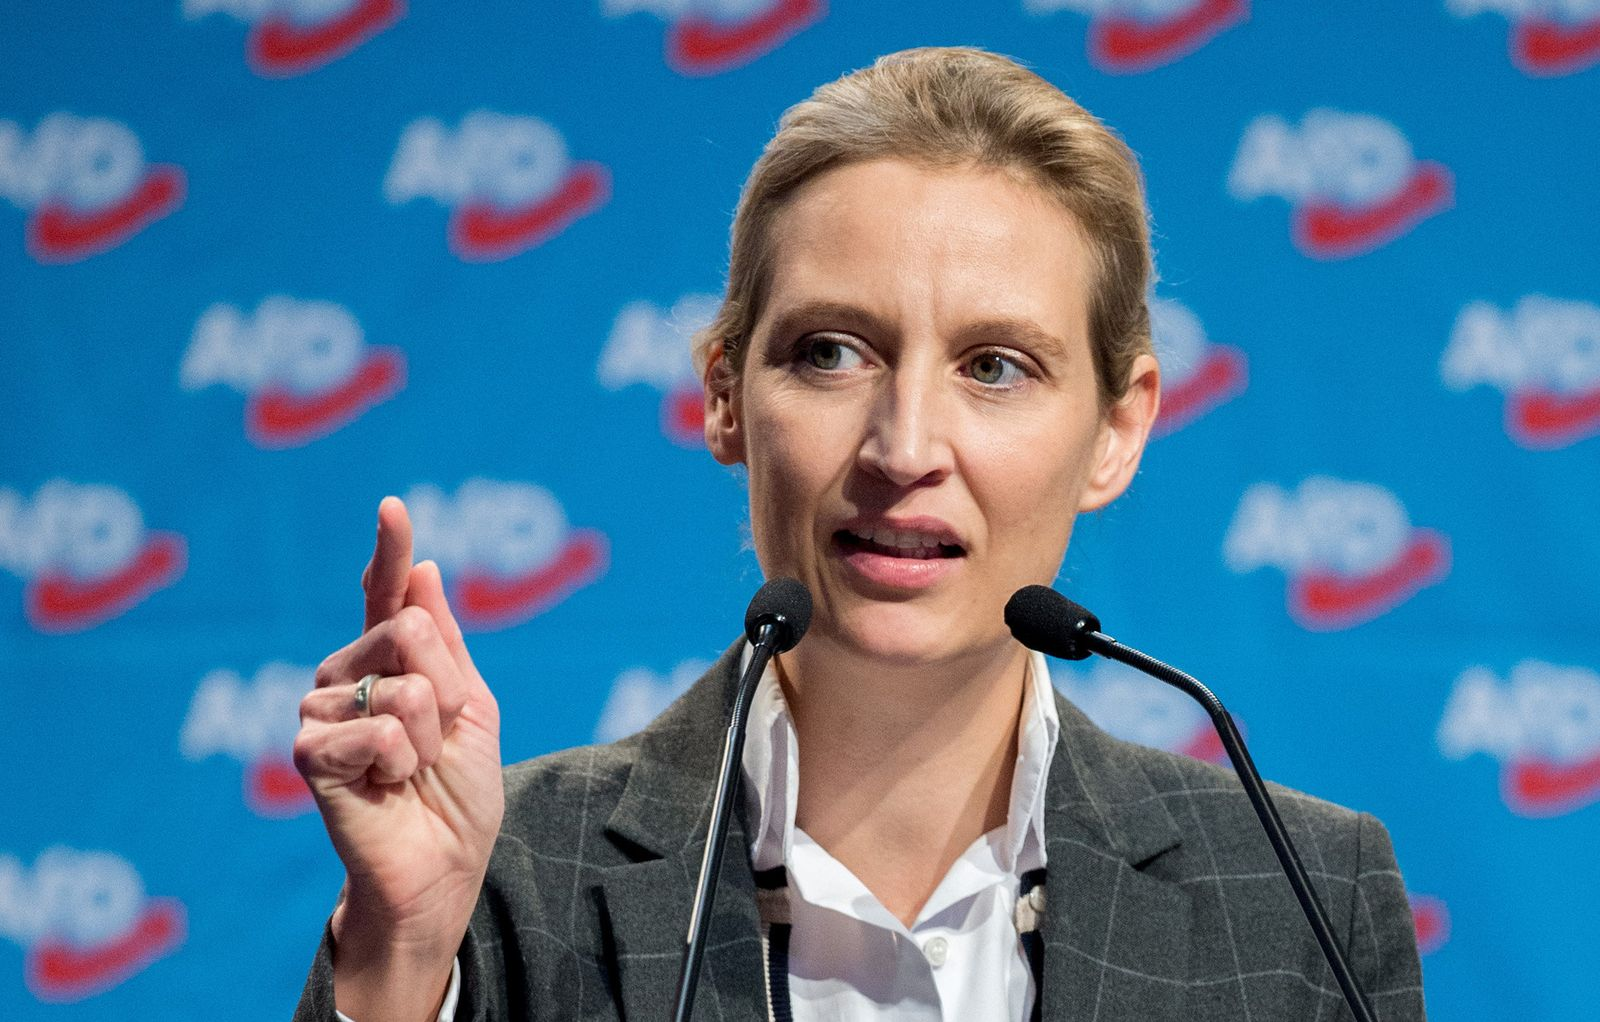 AfD -Alice Weidel